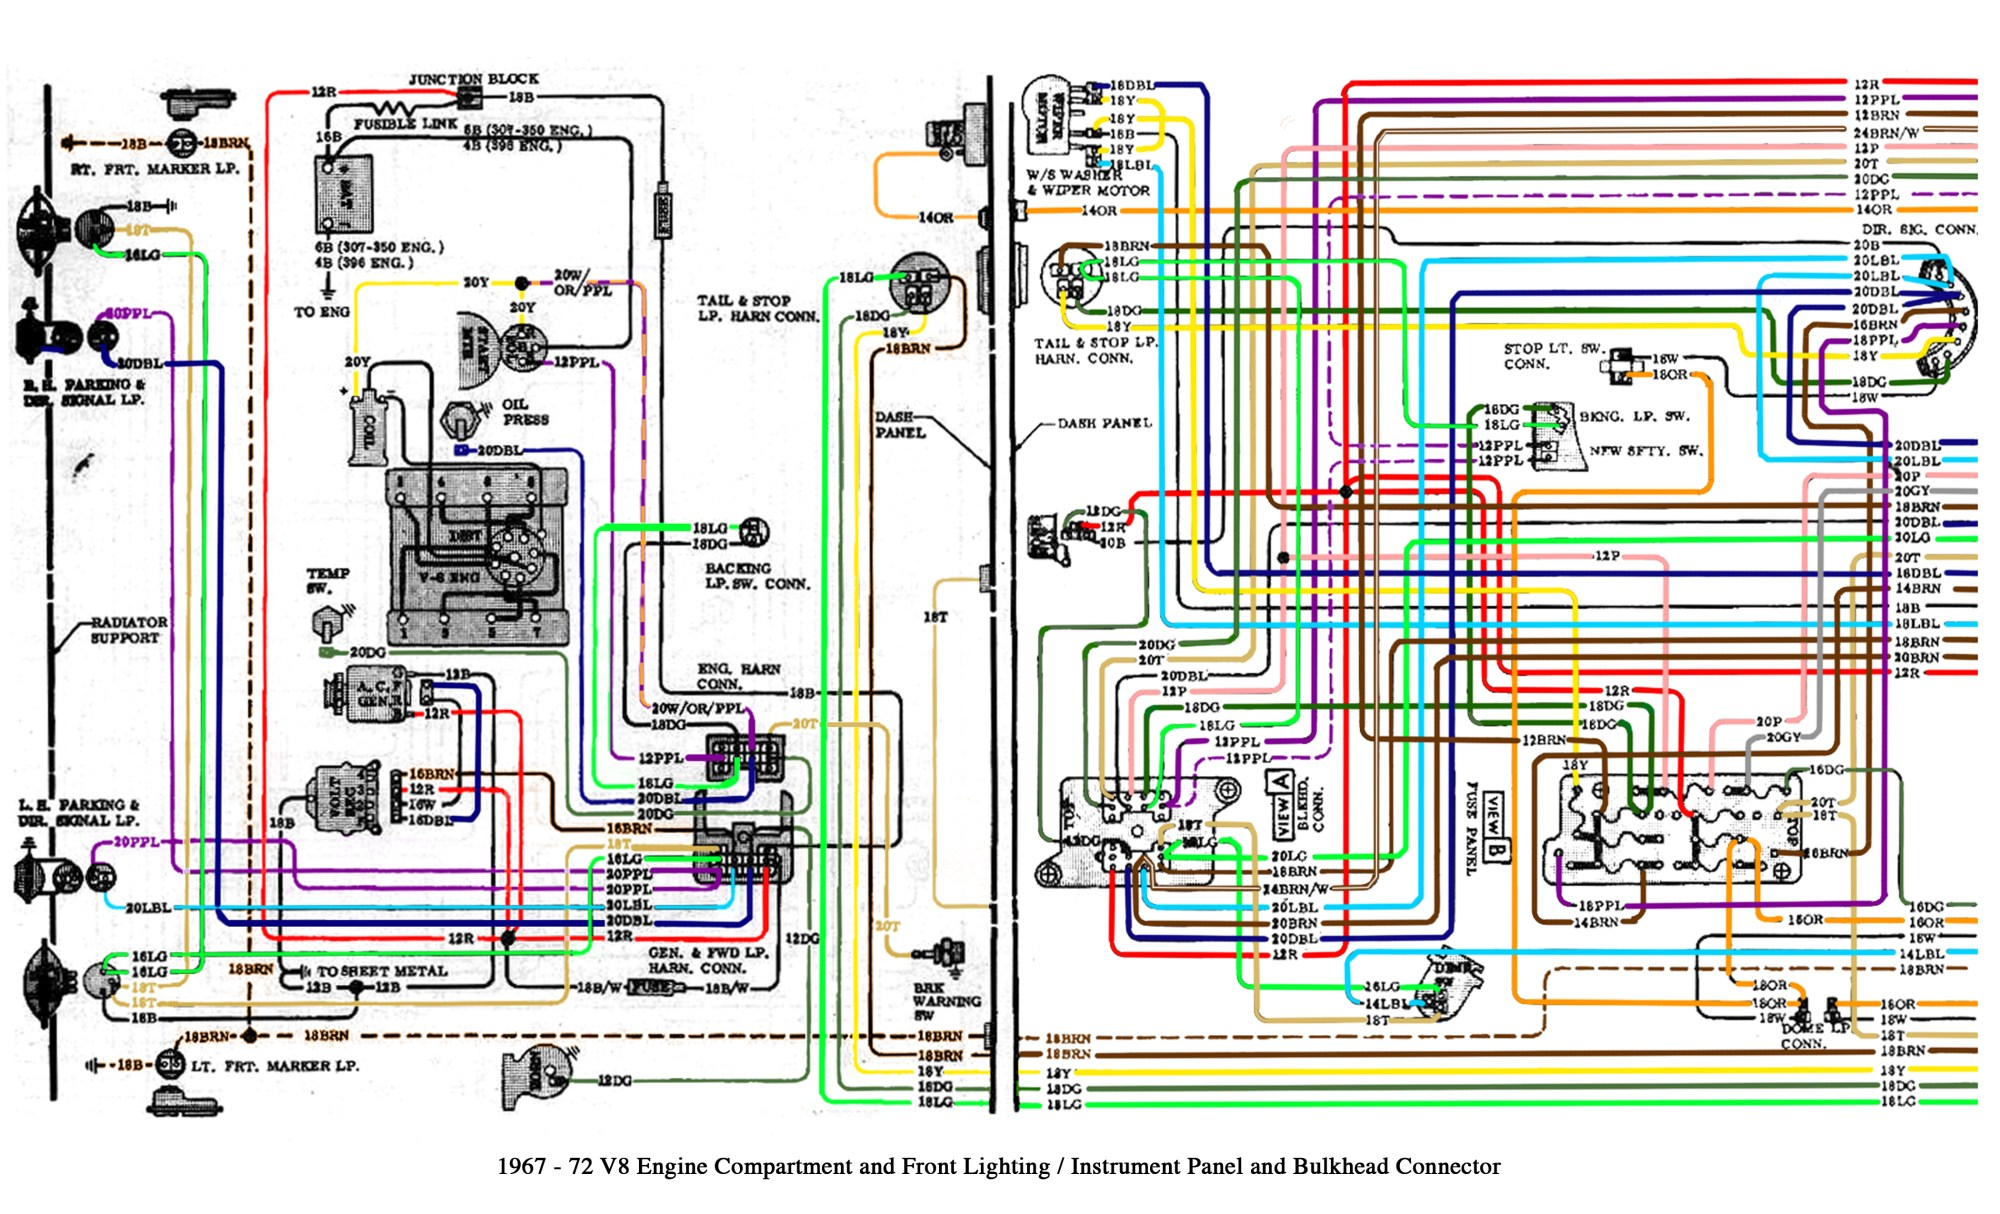 hight resolution of 1968 gm wire diagram wiring diagrams gm points distributor wiring diagram 1968 gm wiring schematic